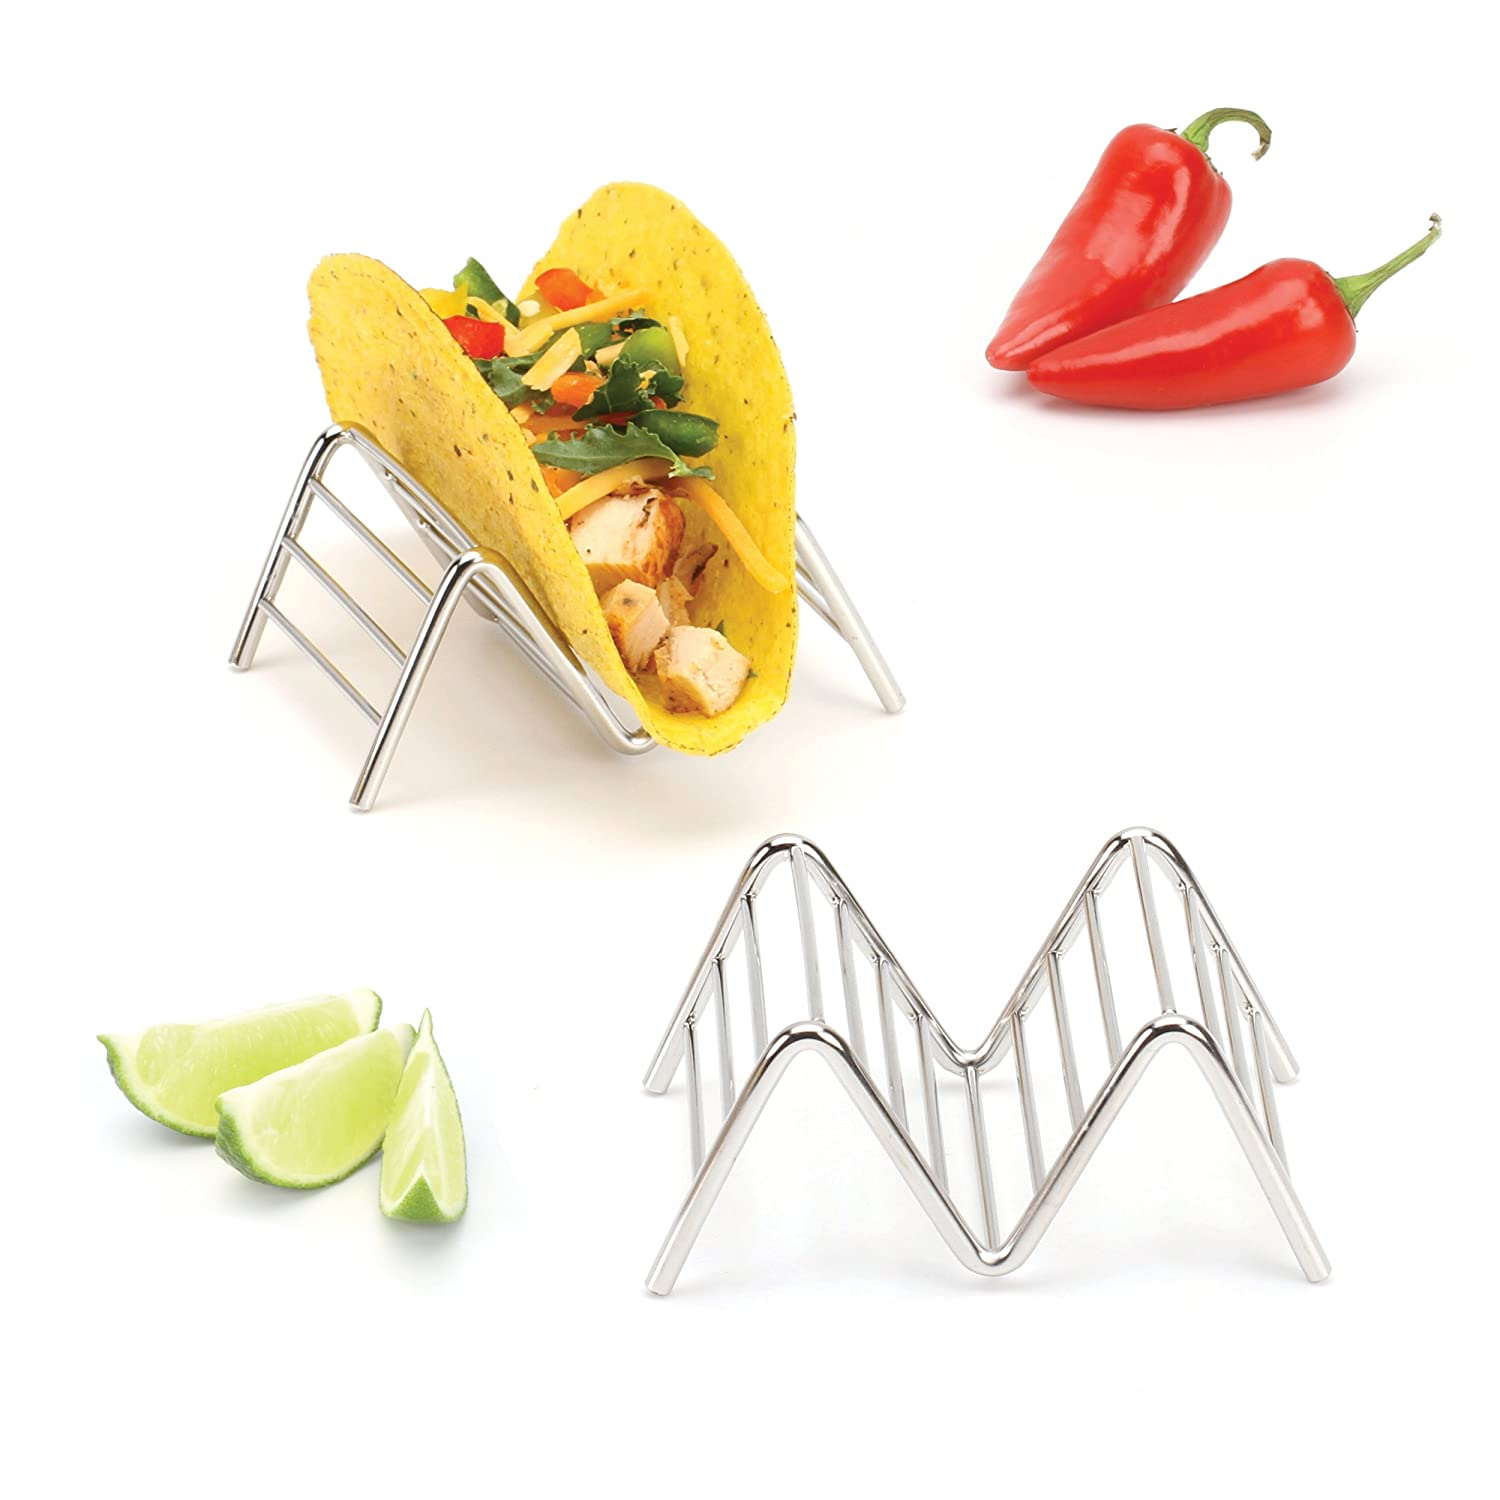 Taco Shell Holder, Stainless Steel Taco Rack Hard Soft Taco's, 2 Pack, 5 Styles Available 2 Lb. Depot (Holds 1 or 2 Tacos)